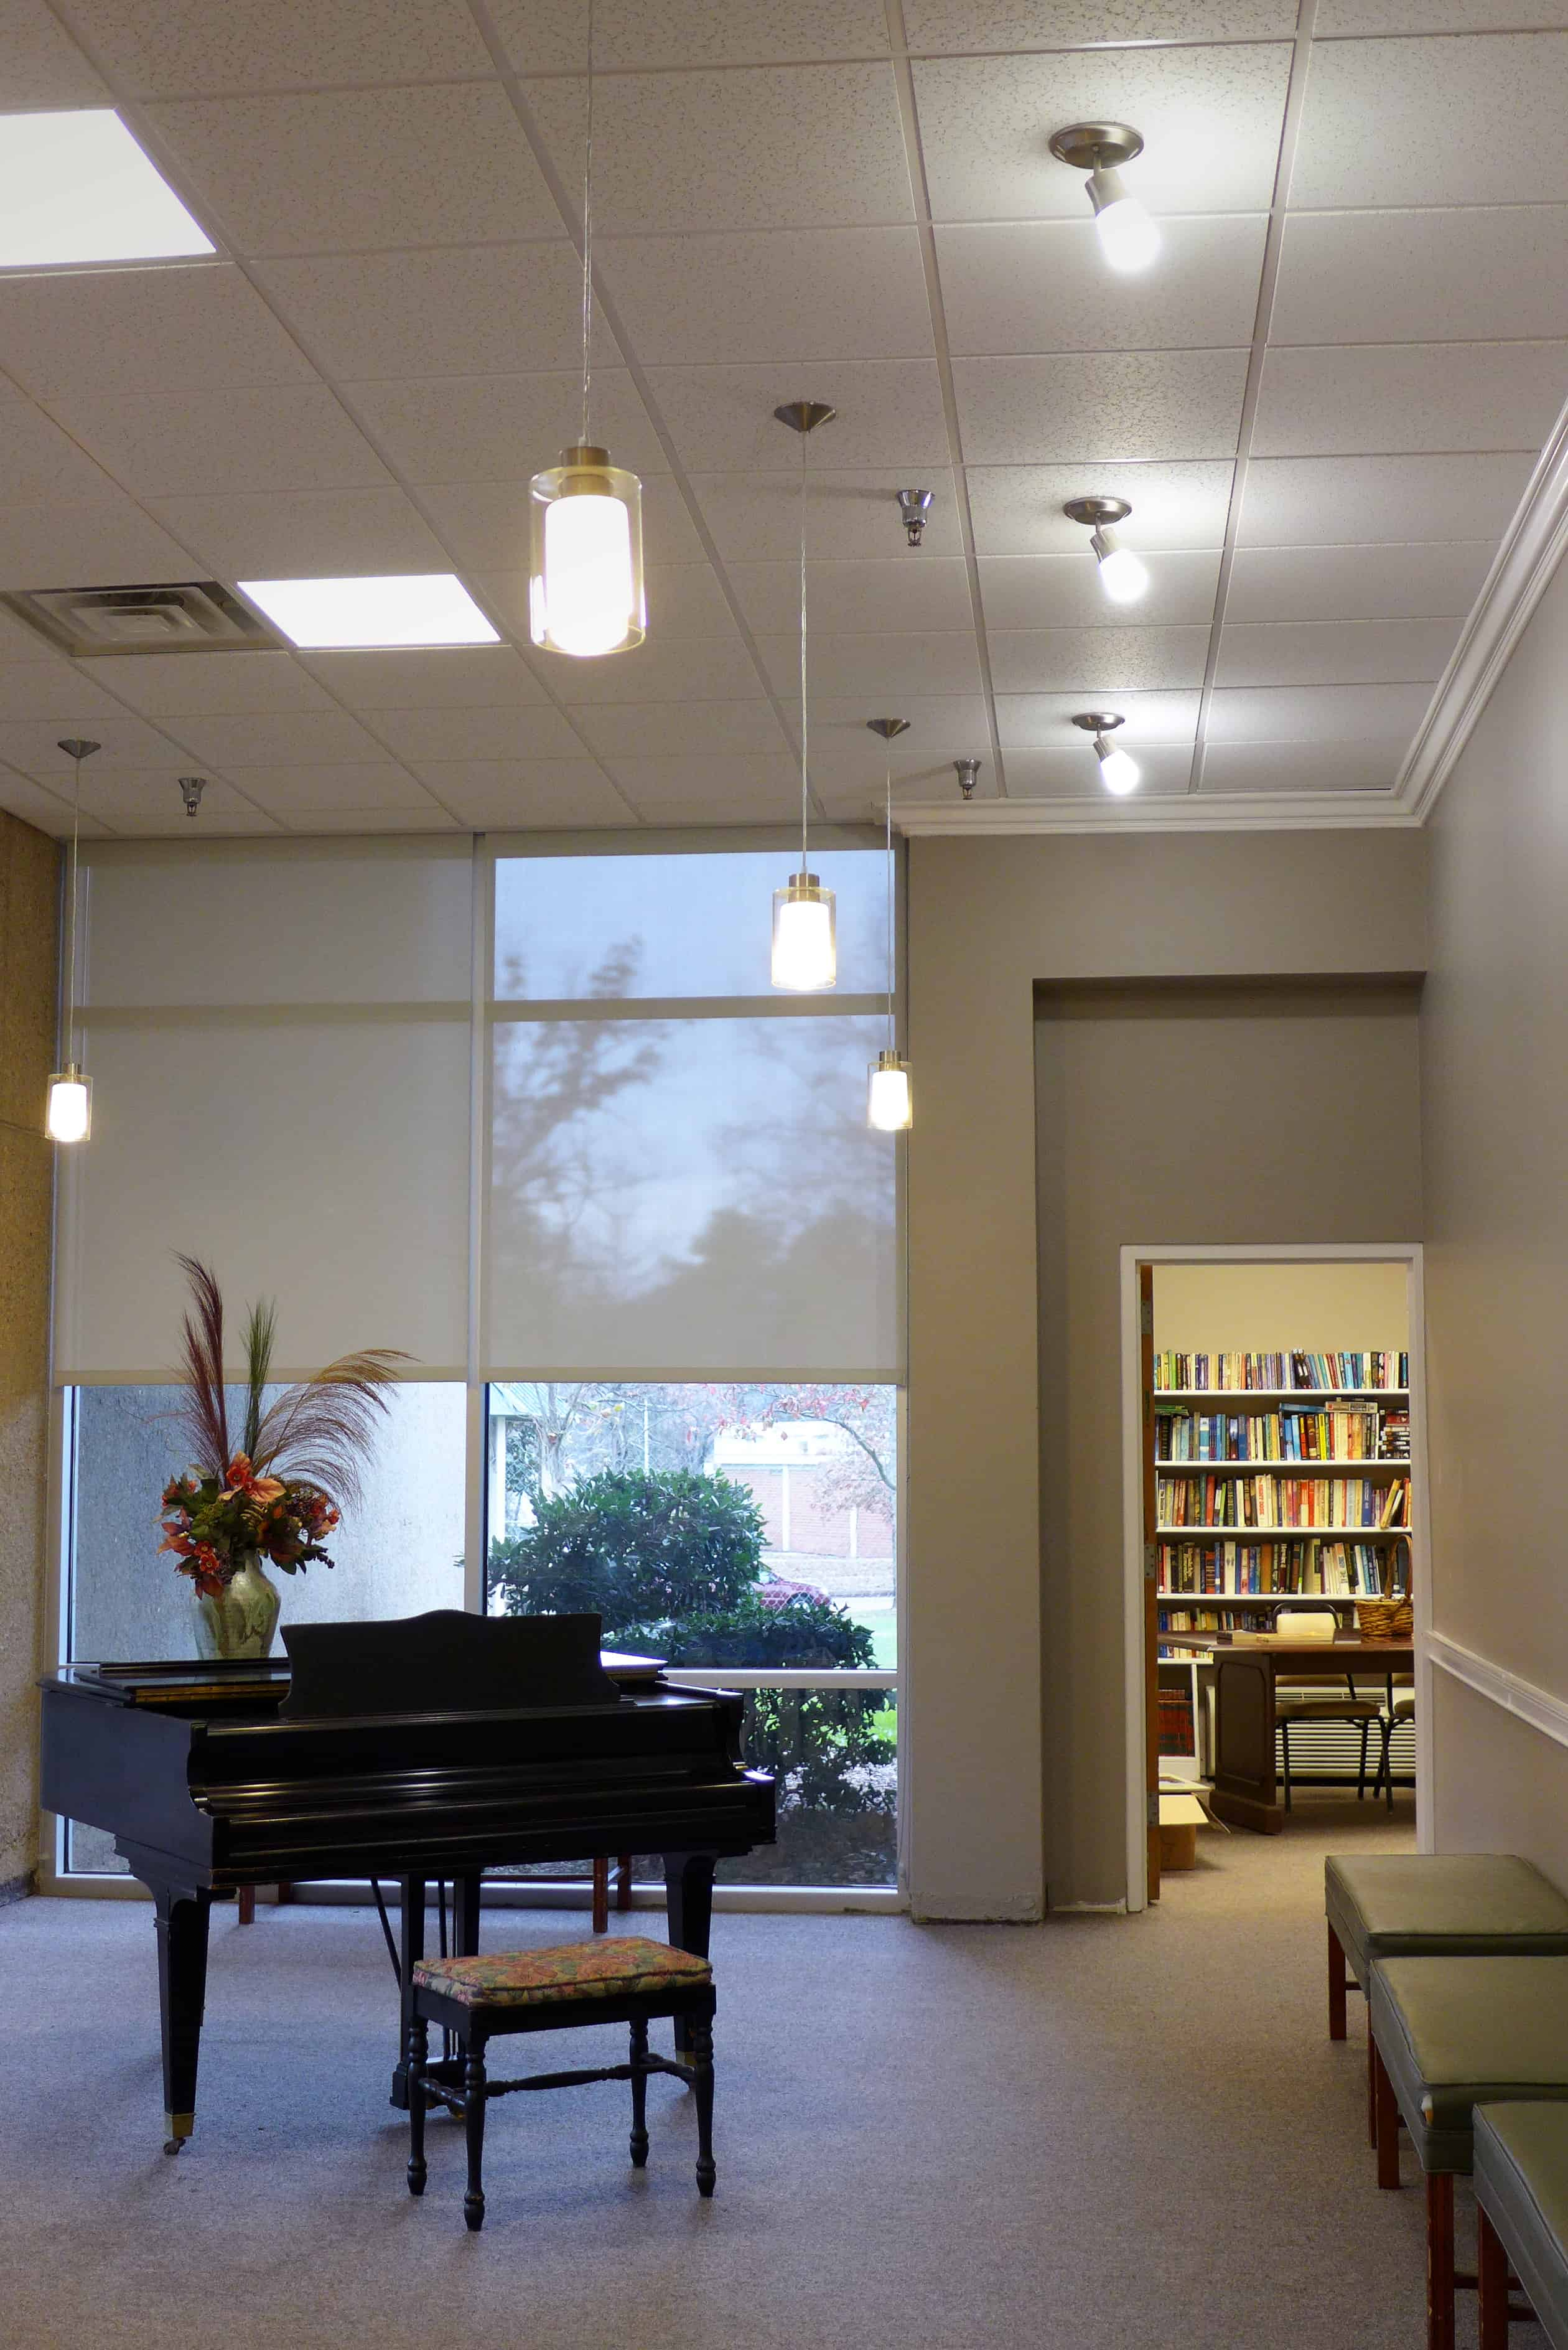 Dogwood_south lobby_2